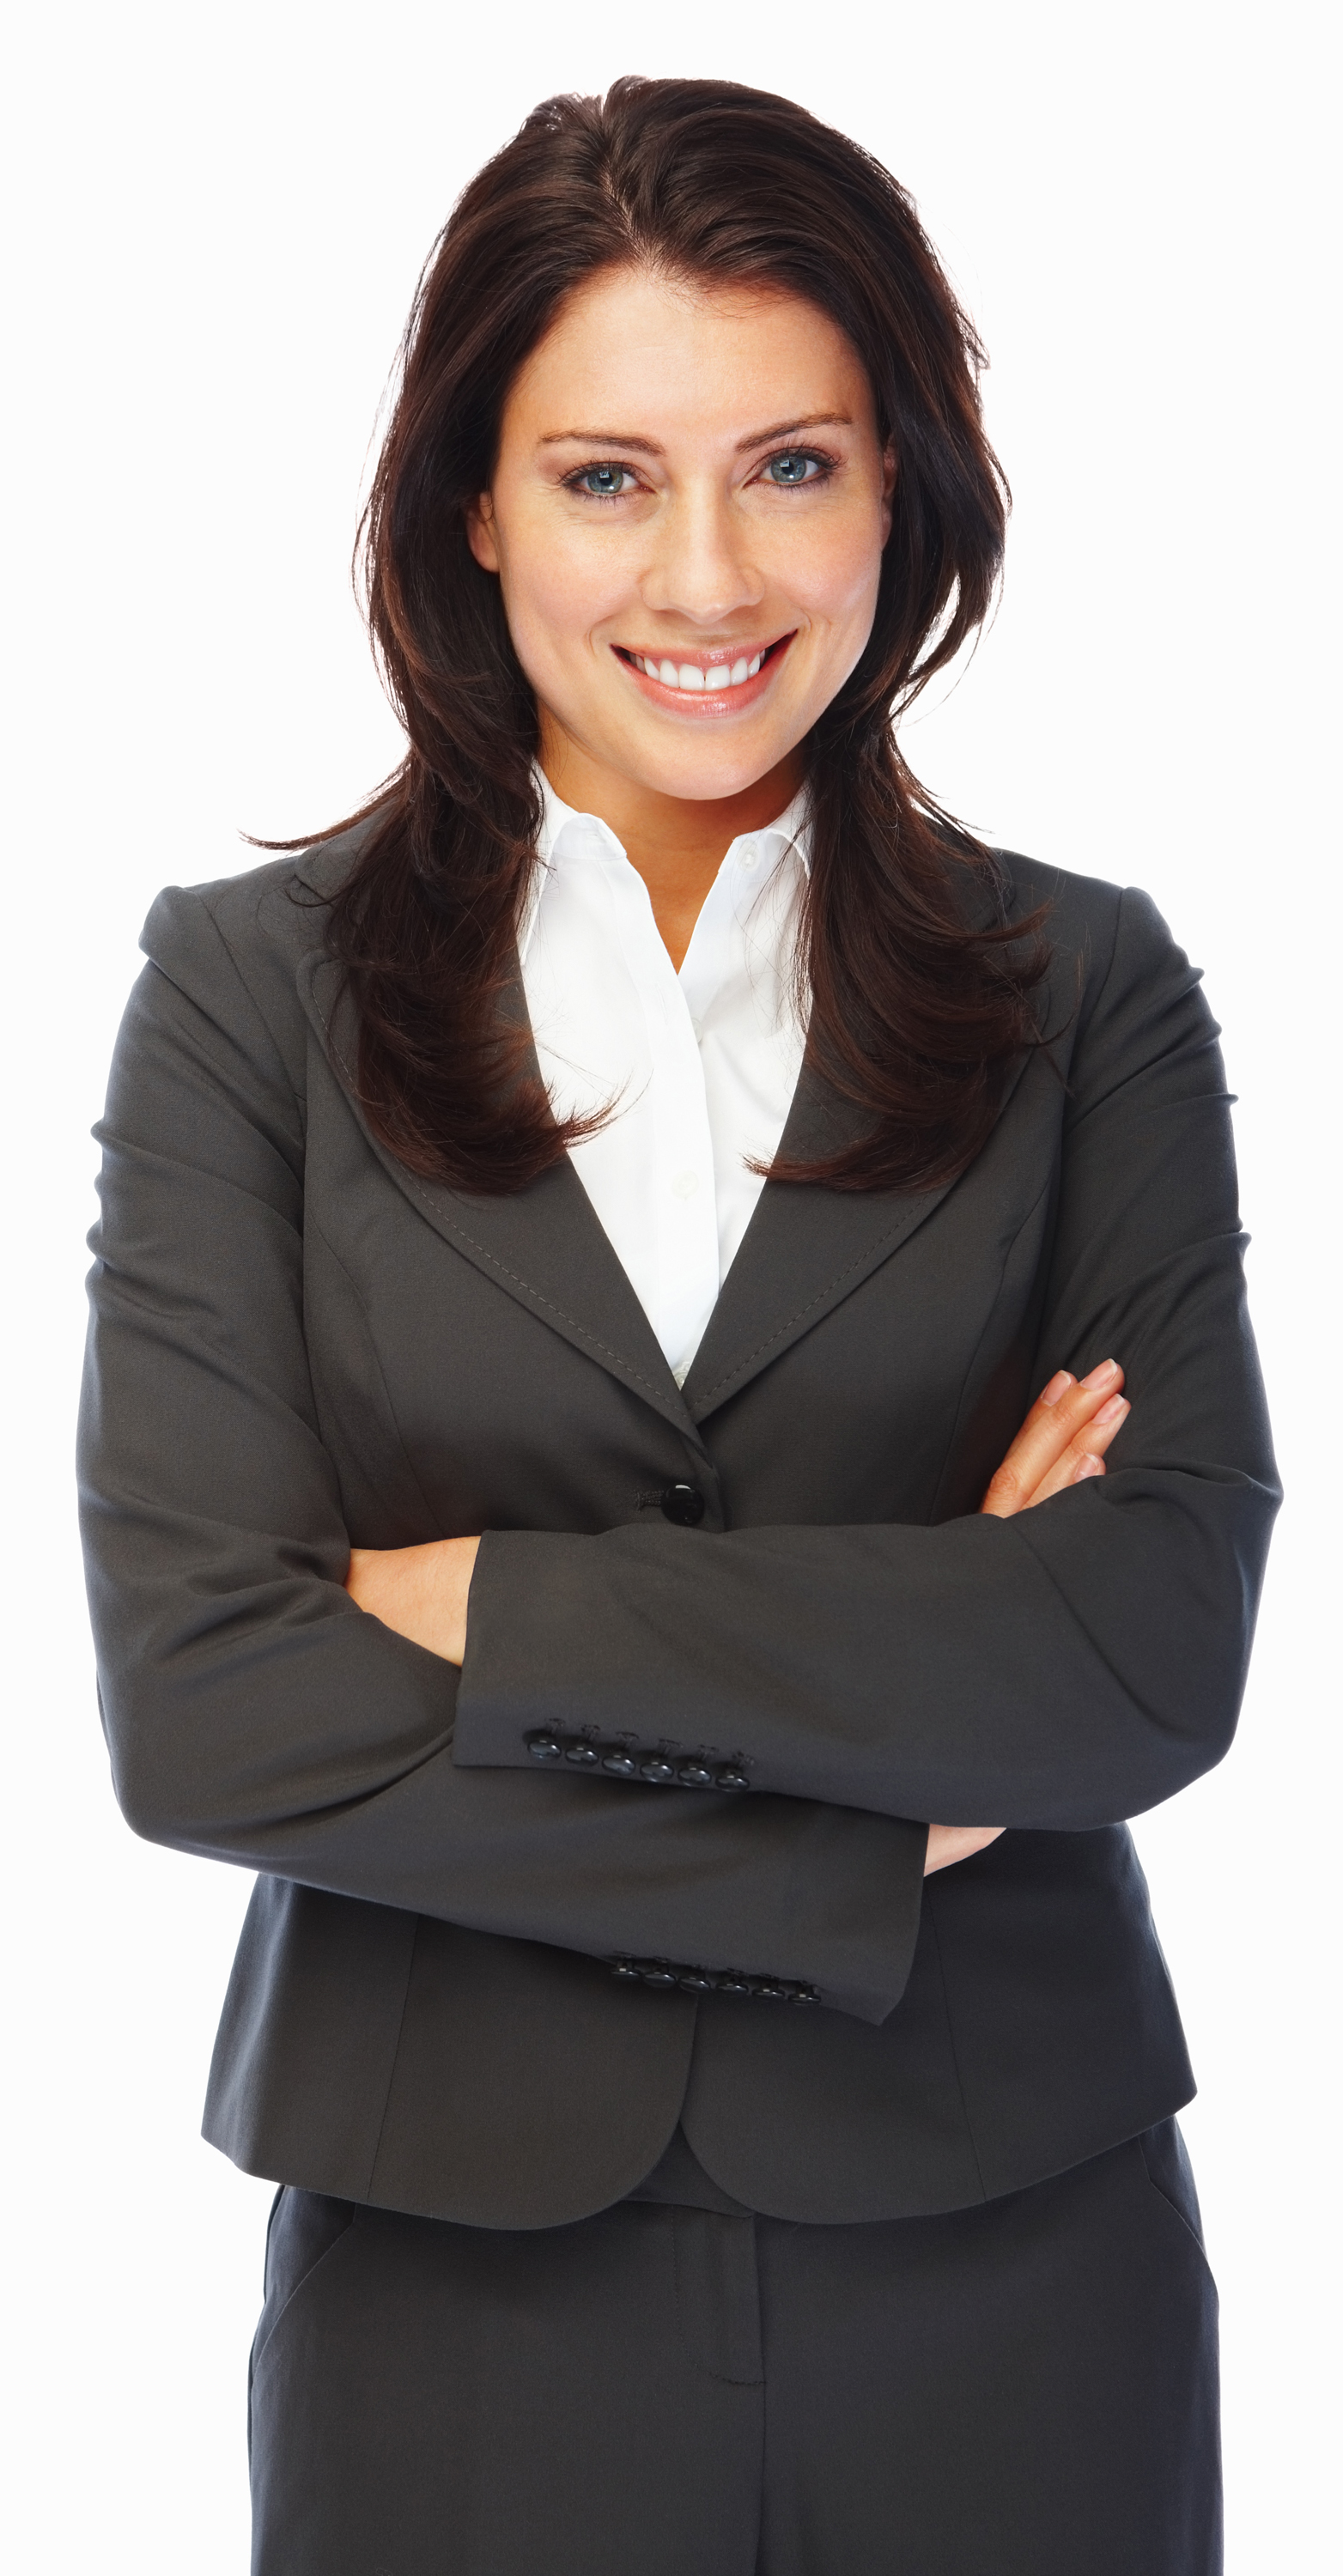 14 Businesswoman Stock Photography Images